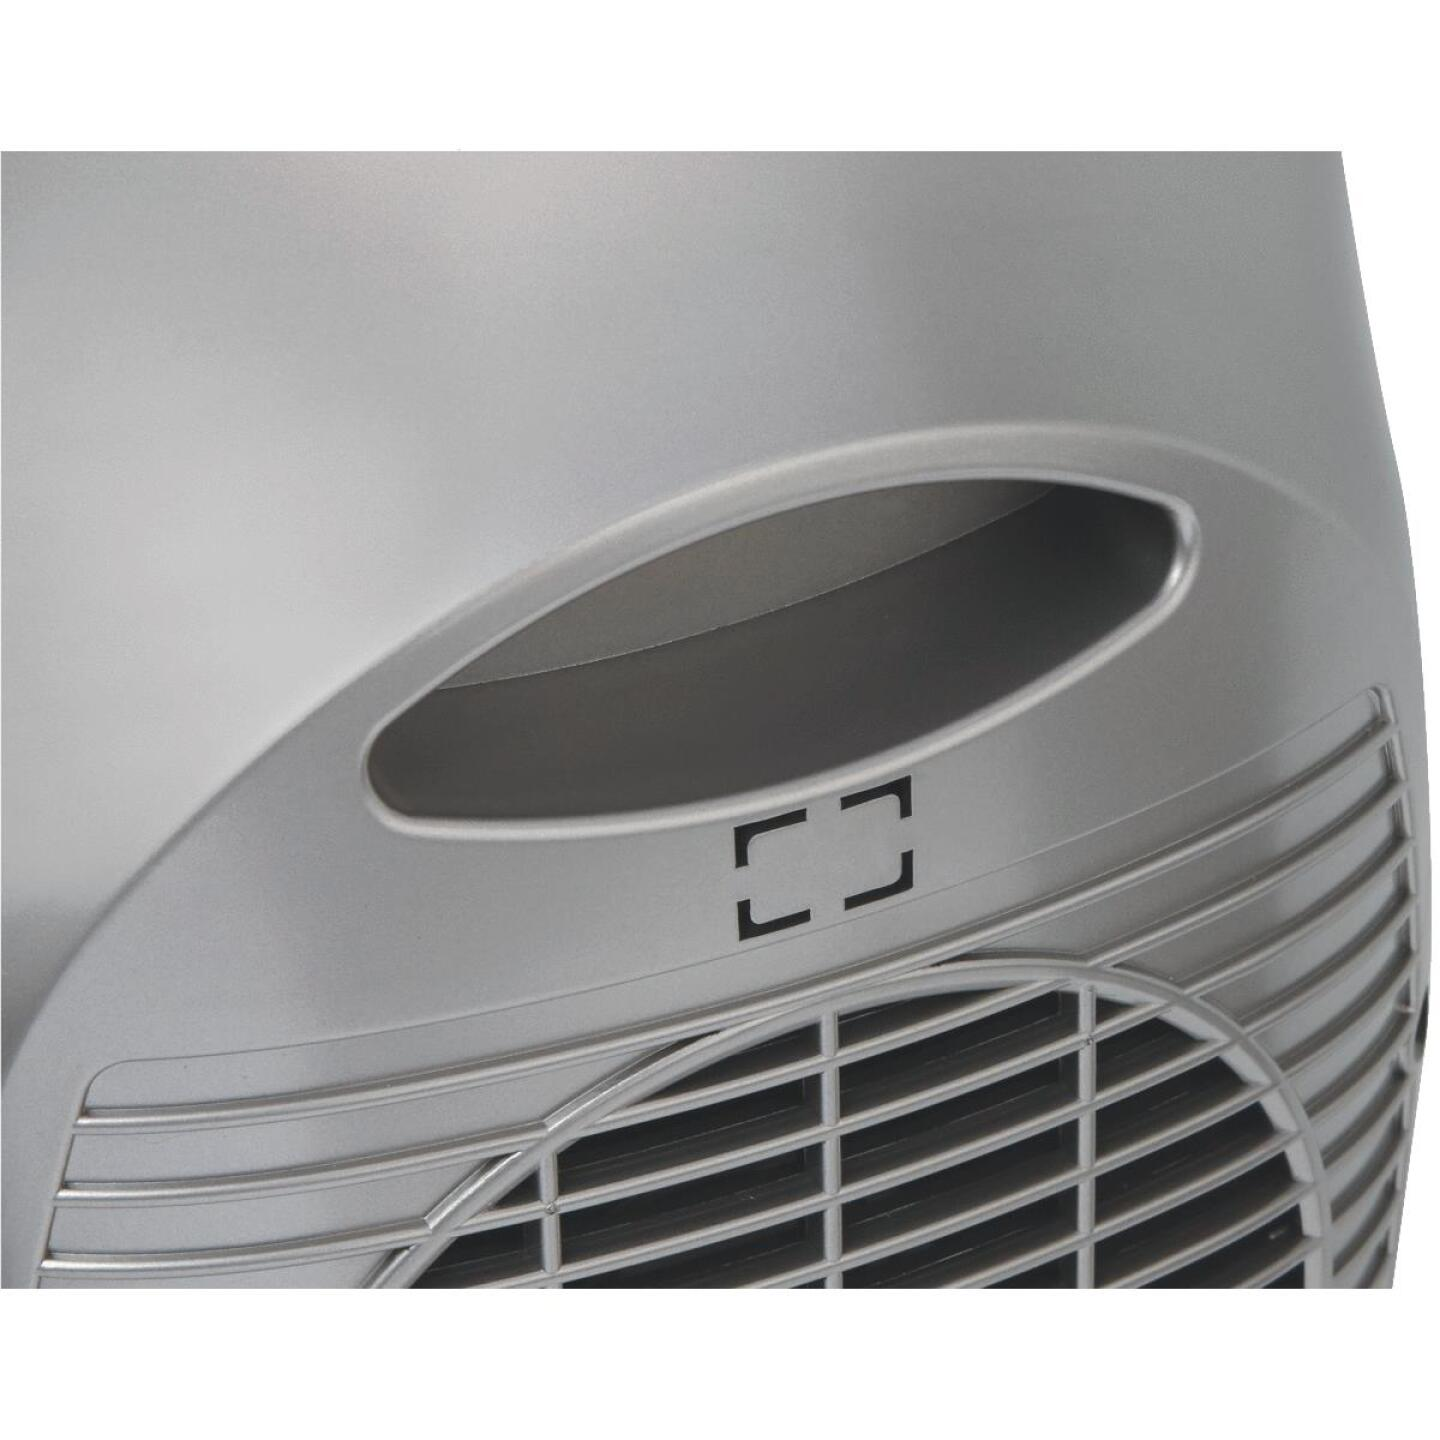 Best Comfort 1550-Watt 120-Volt Oscillating Ceramic Space Heater with PTC Image 5